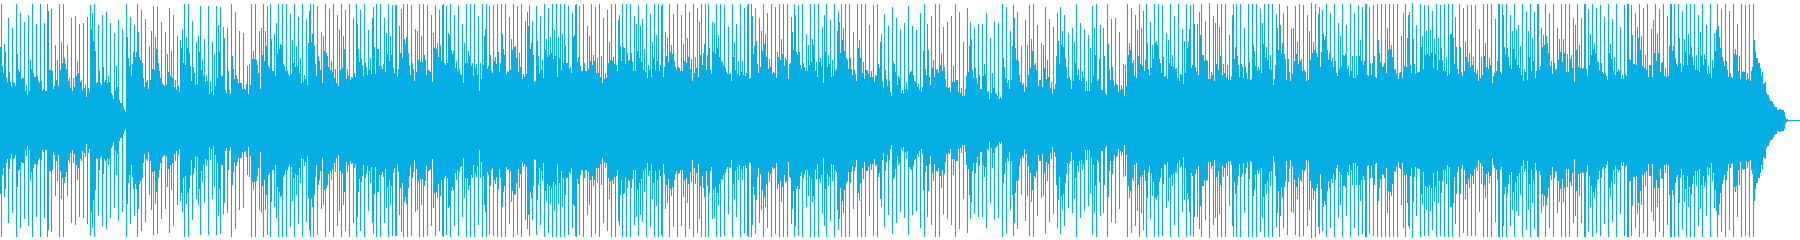 Corporate VP167, Pop, Refreshing, Gentle L's reproduced waveform